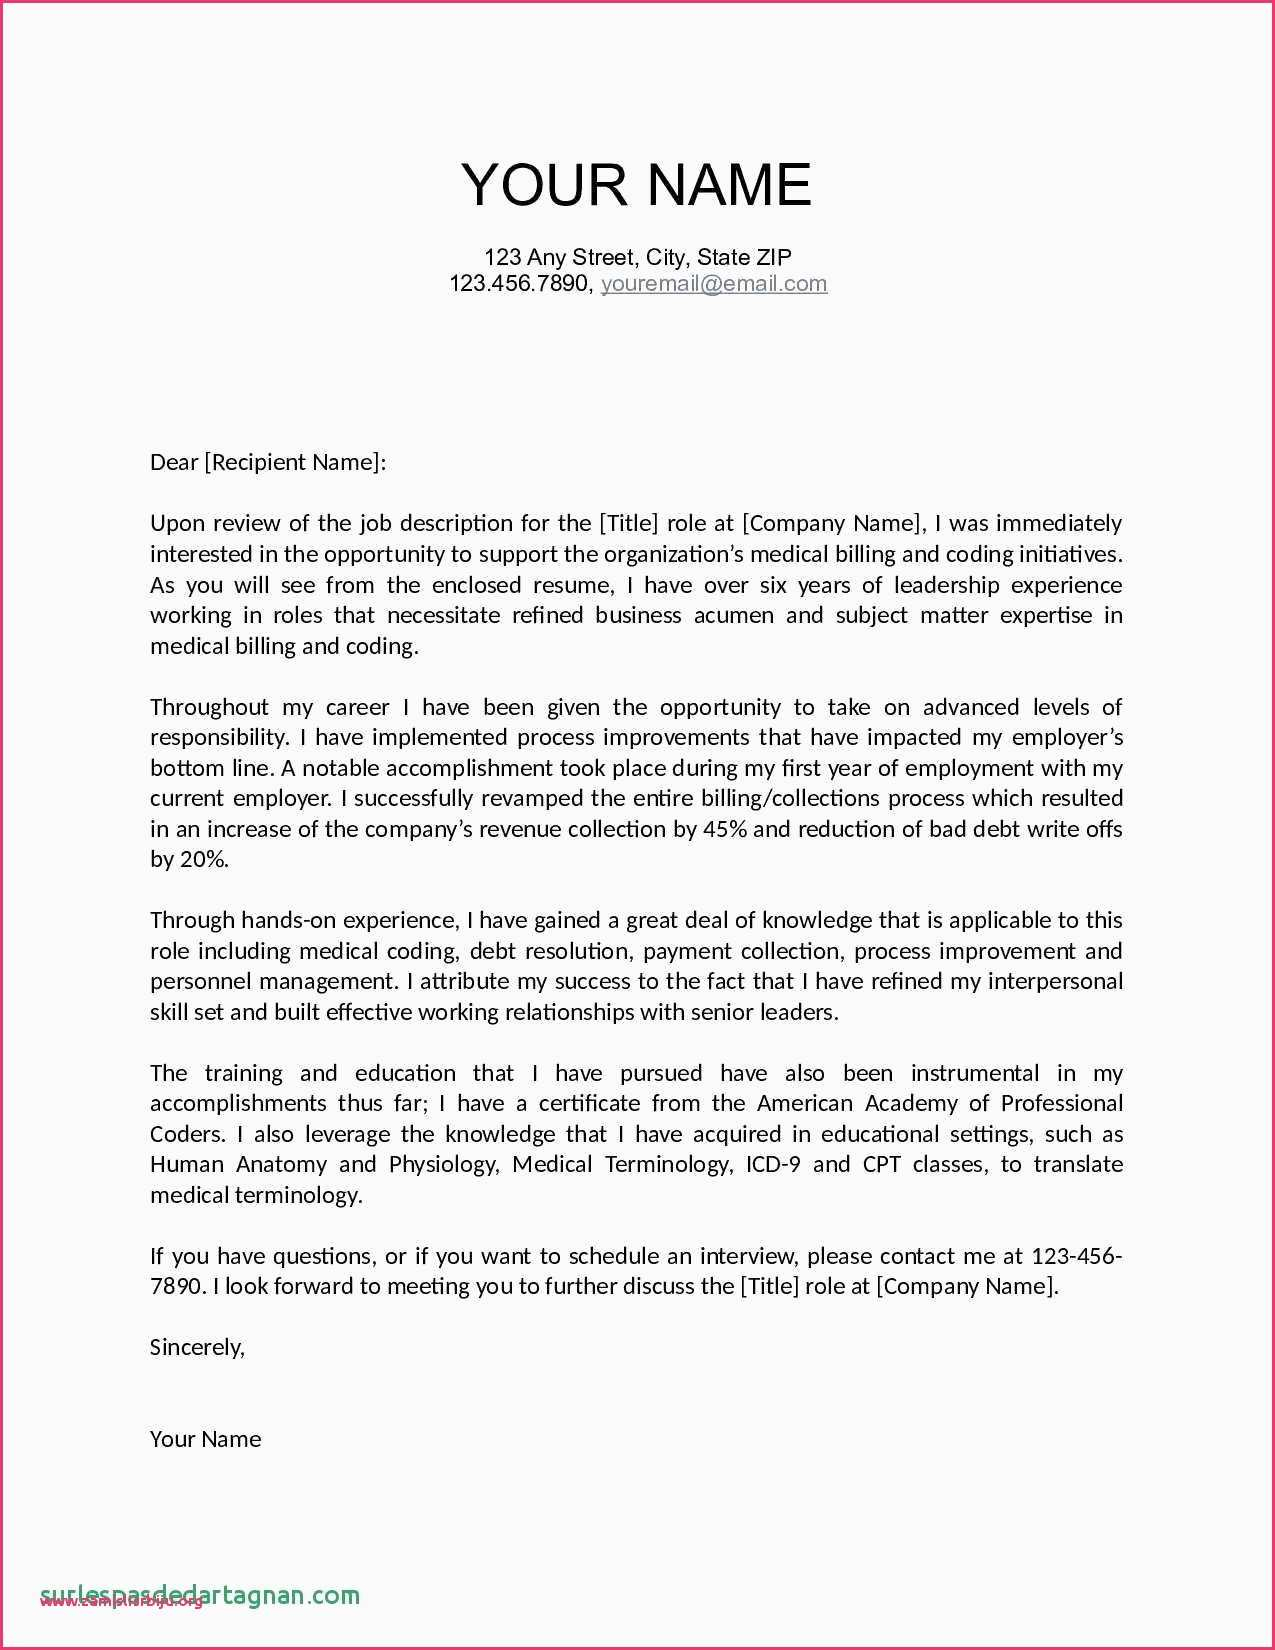 year in review letter template example-College Application Letter Examples Resume for Jobs Best Fresh Job 16-p